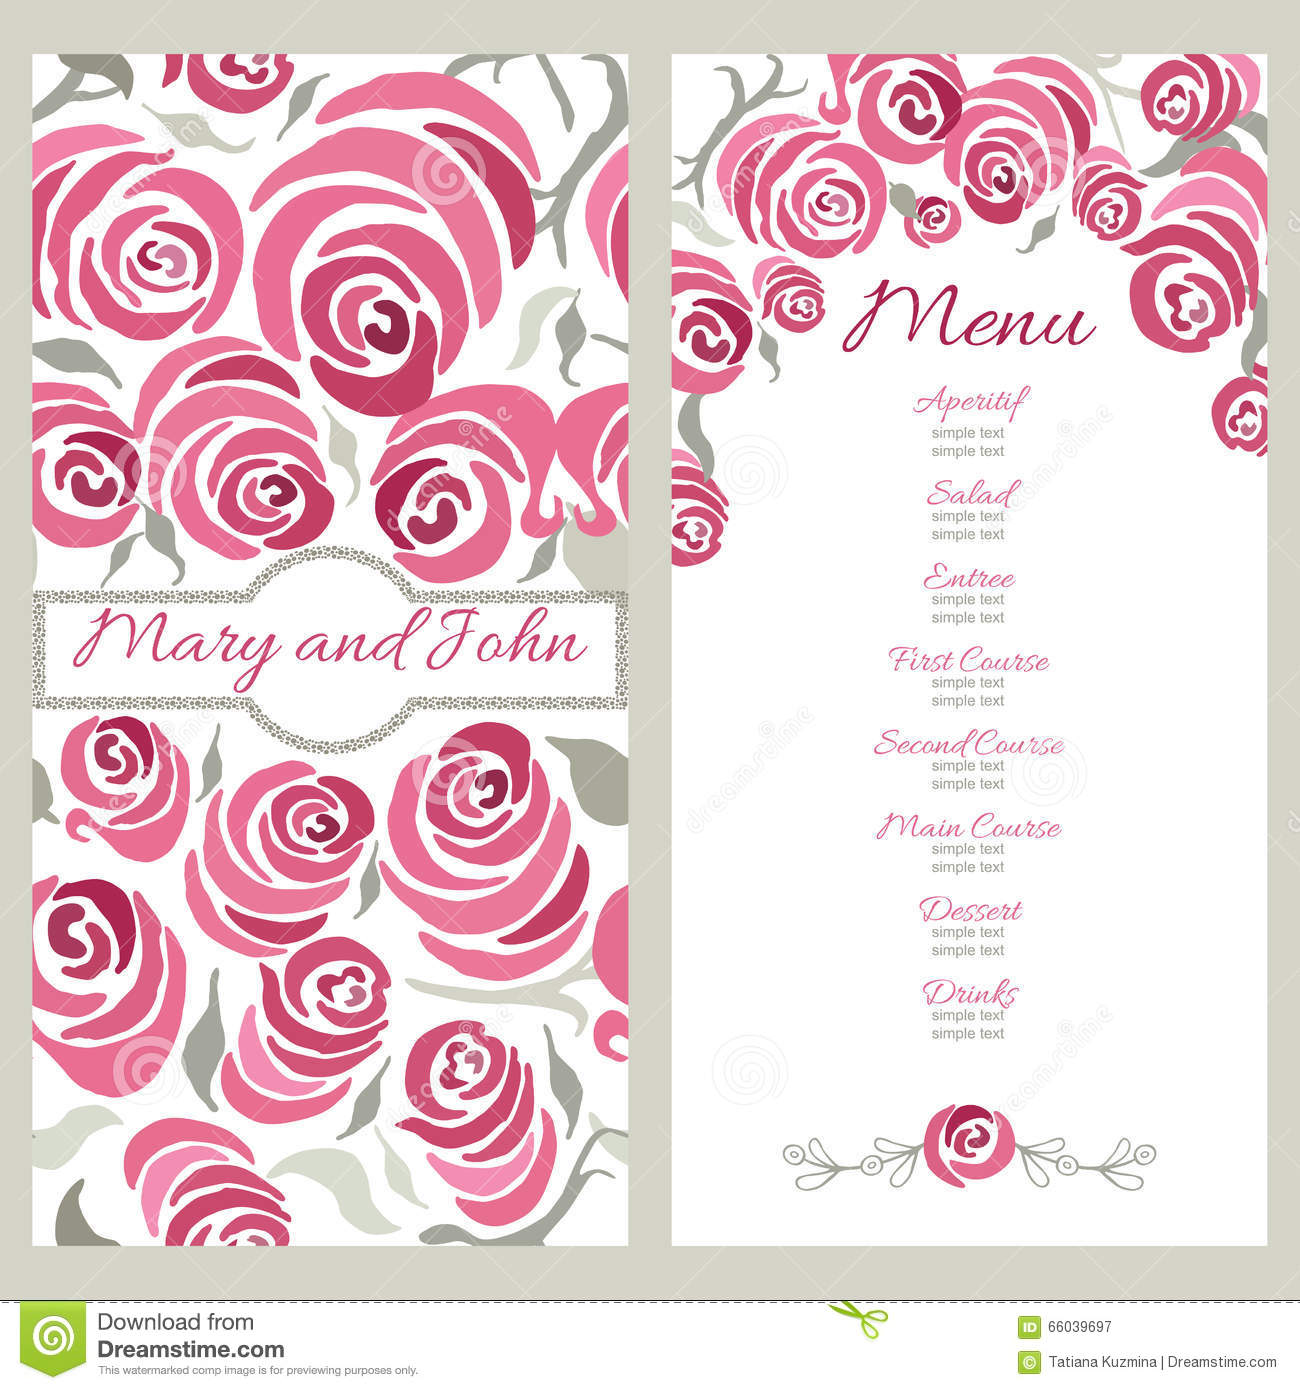 Wedding Menu Design With Hand Painted Roses Decorative Cards With